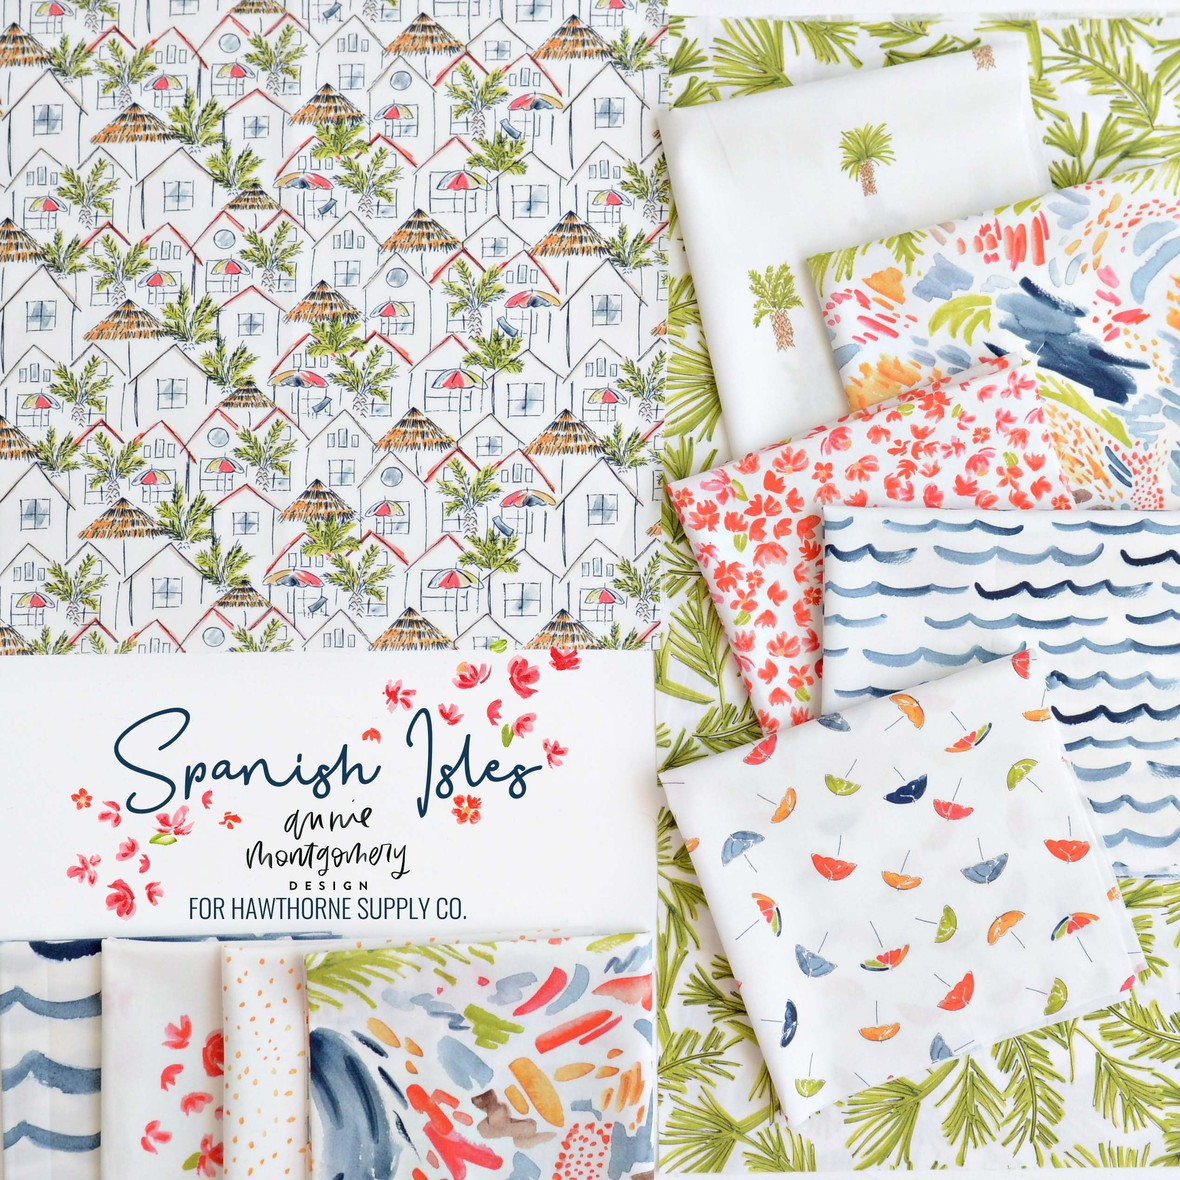 Spanish Isles Fabric Annie Montgomery at Hawthorne Supply Co.